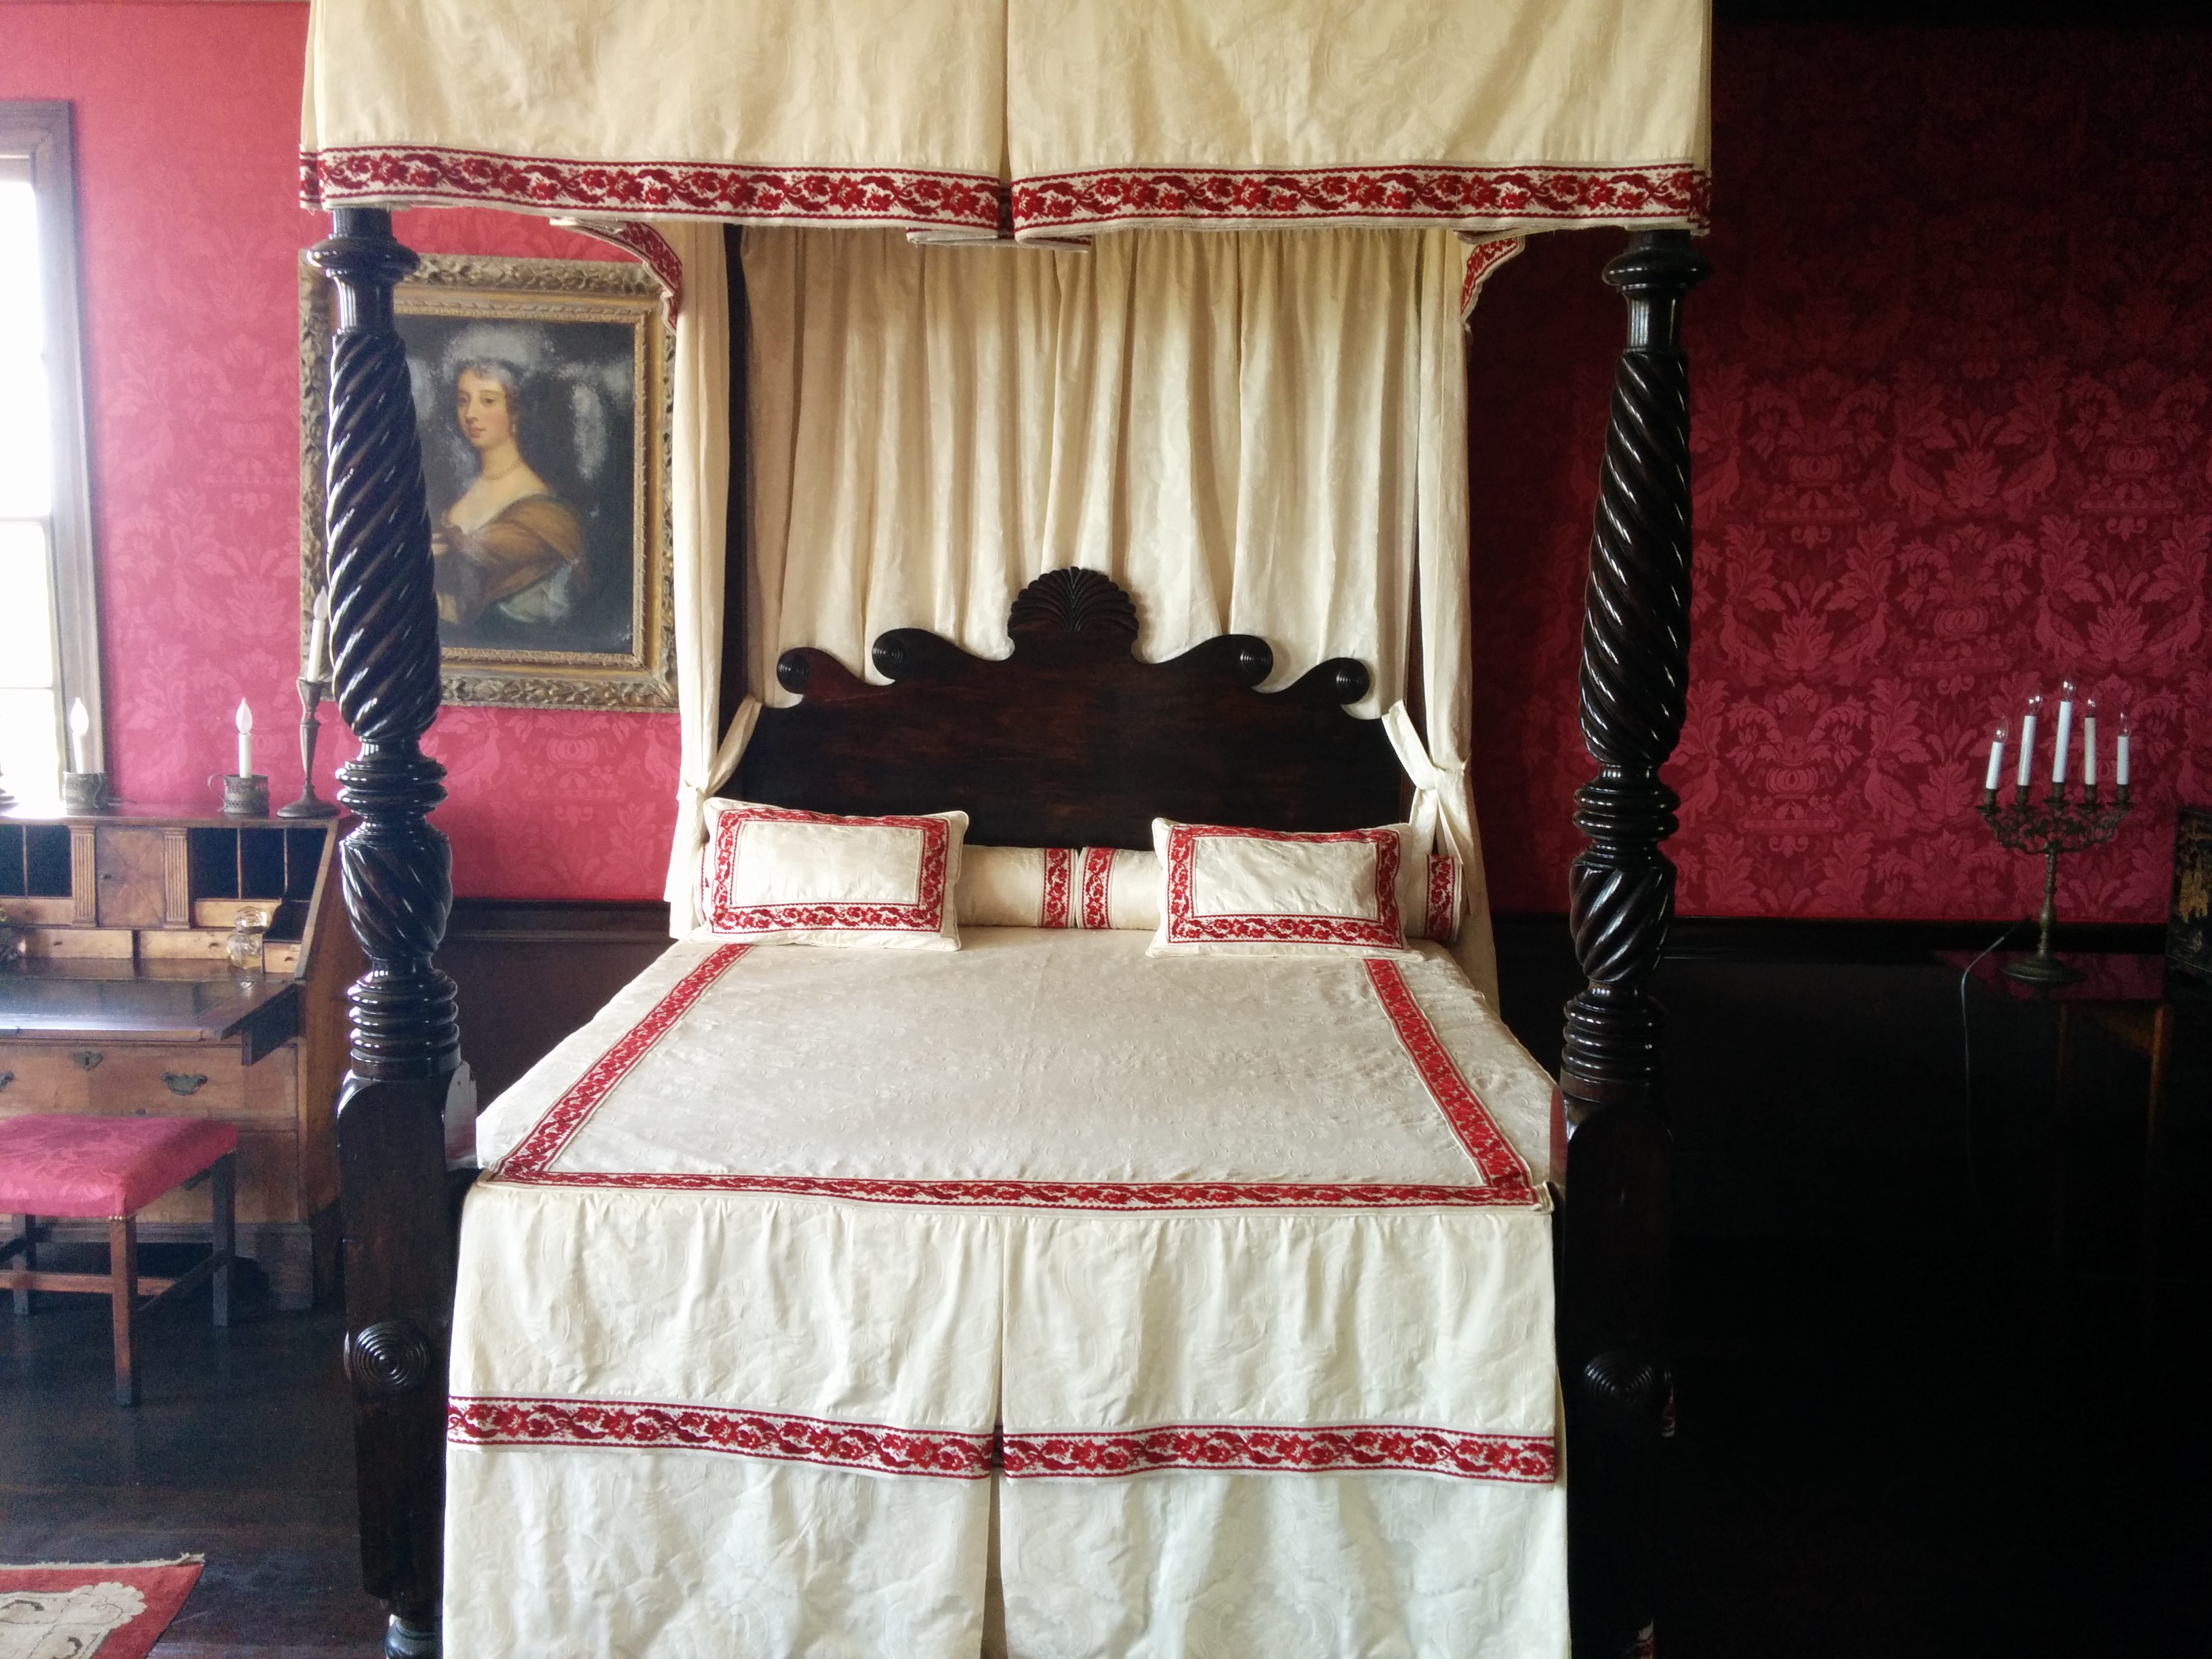 The bed where Annie was murdered